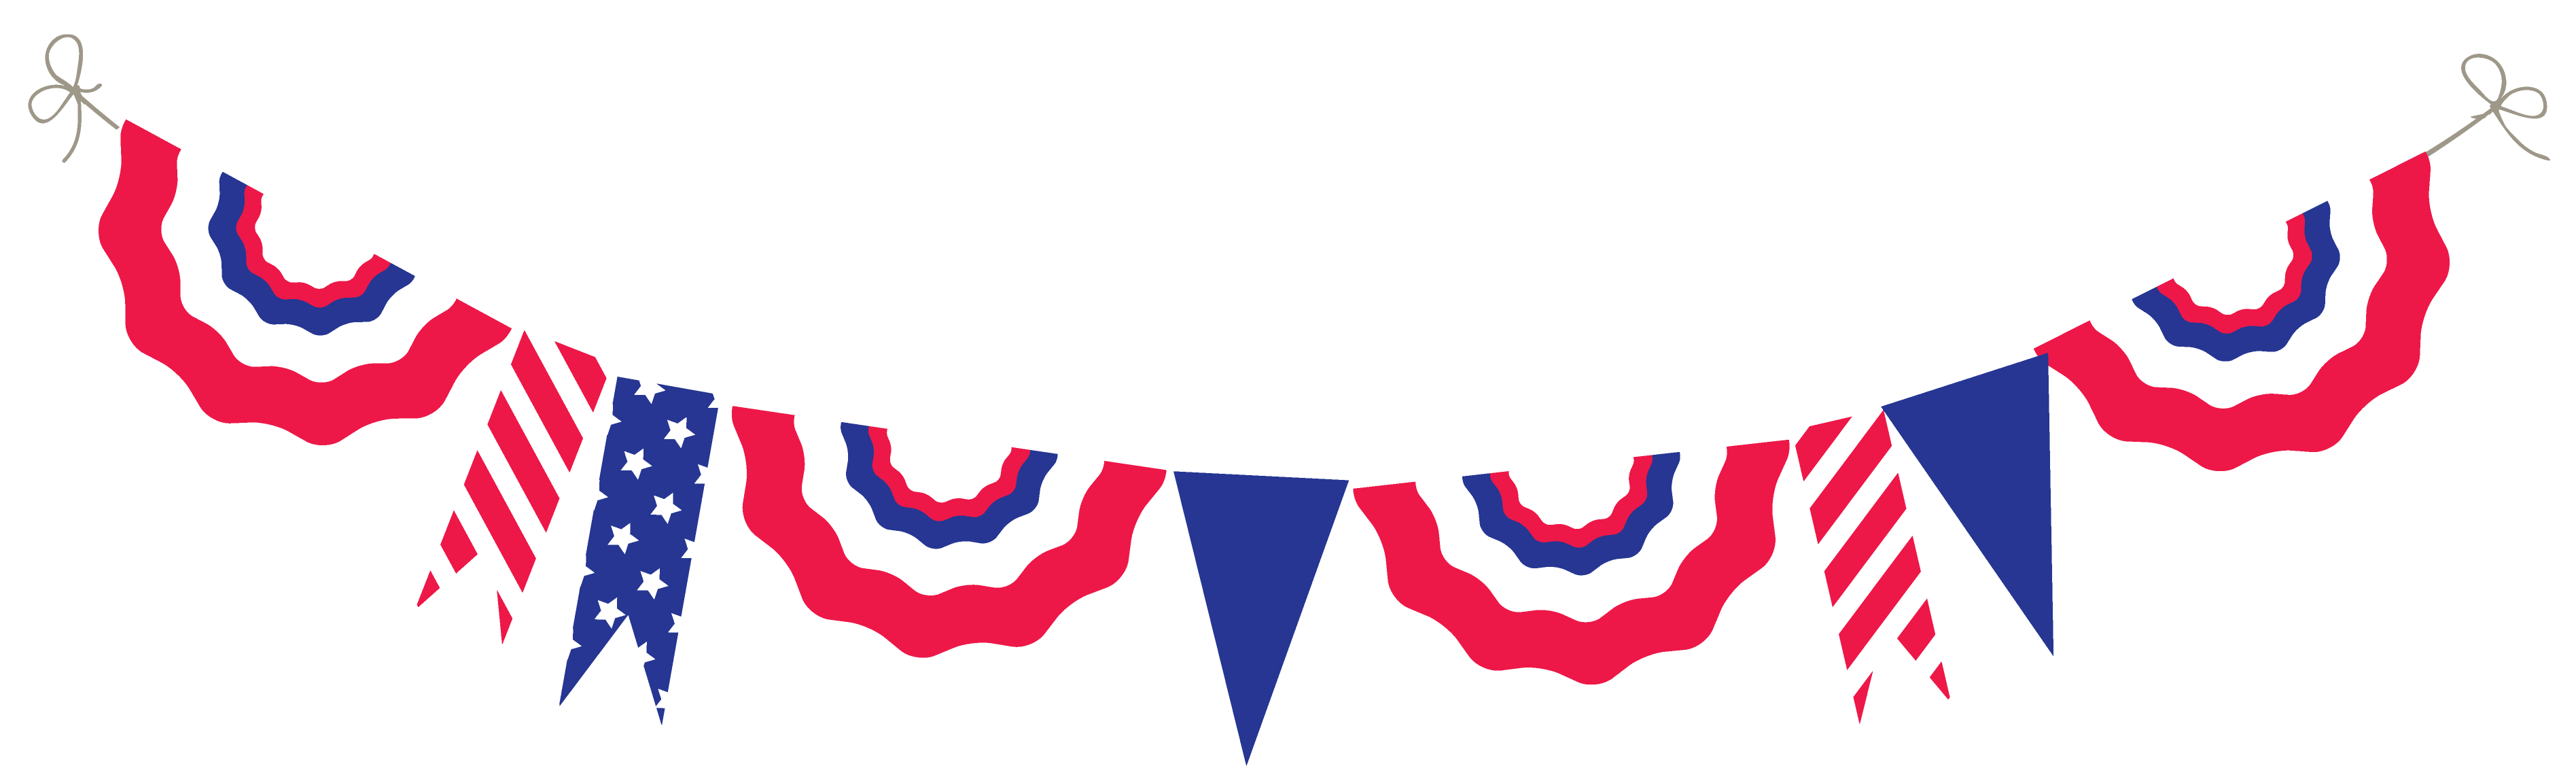 3791x1146 Top 93 Fourth Of July Clip Art